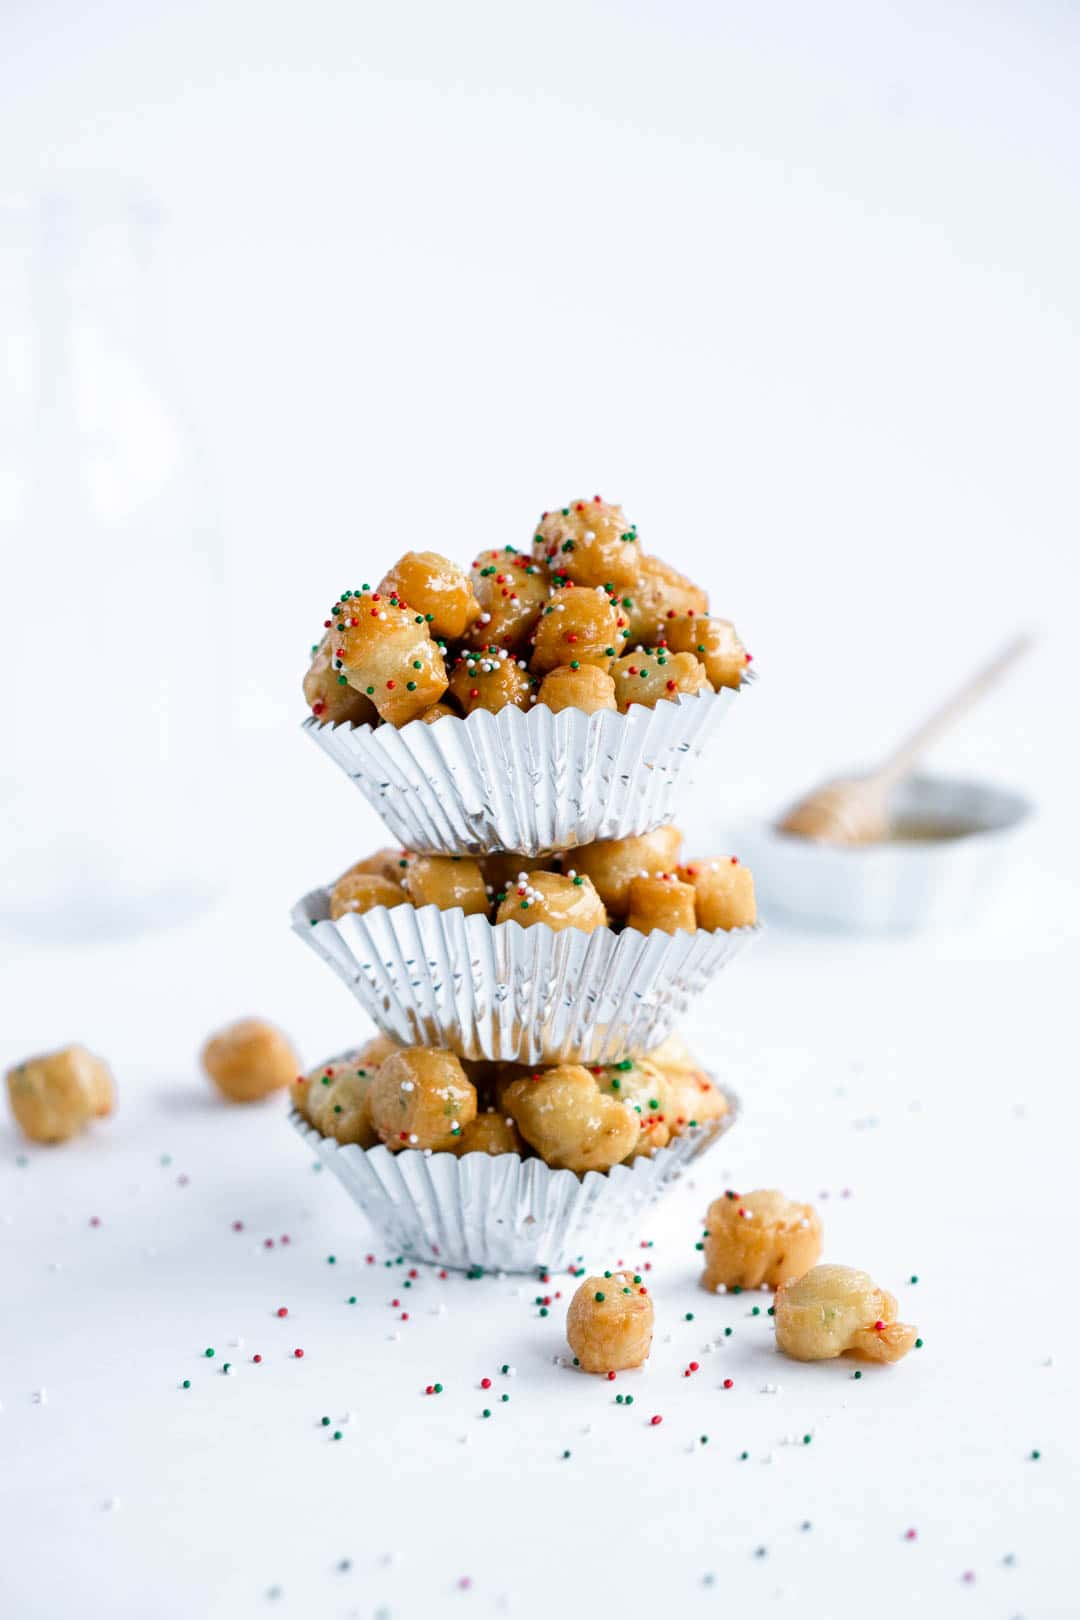 Stack of Struffoli Italian Christmas honey balls in individual muffin liners